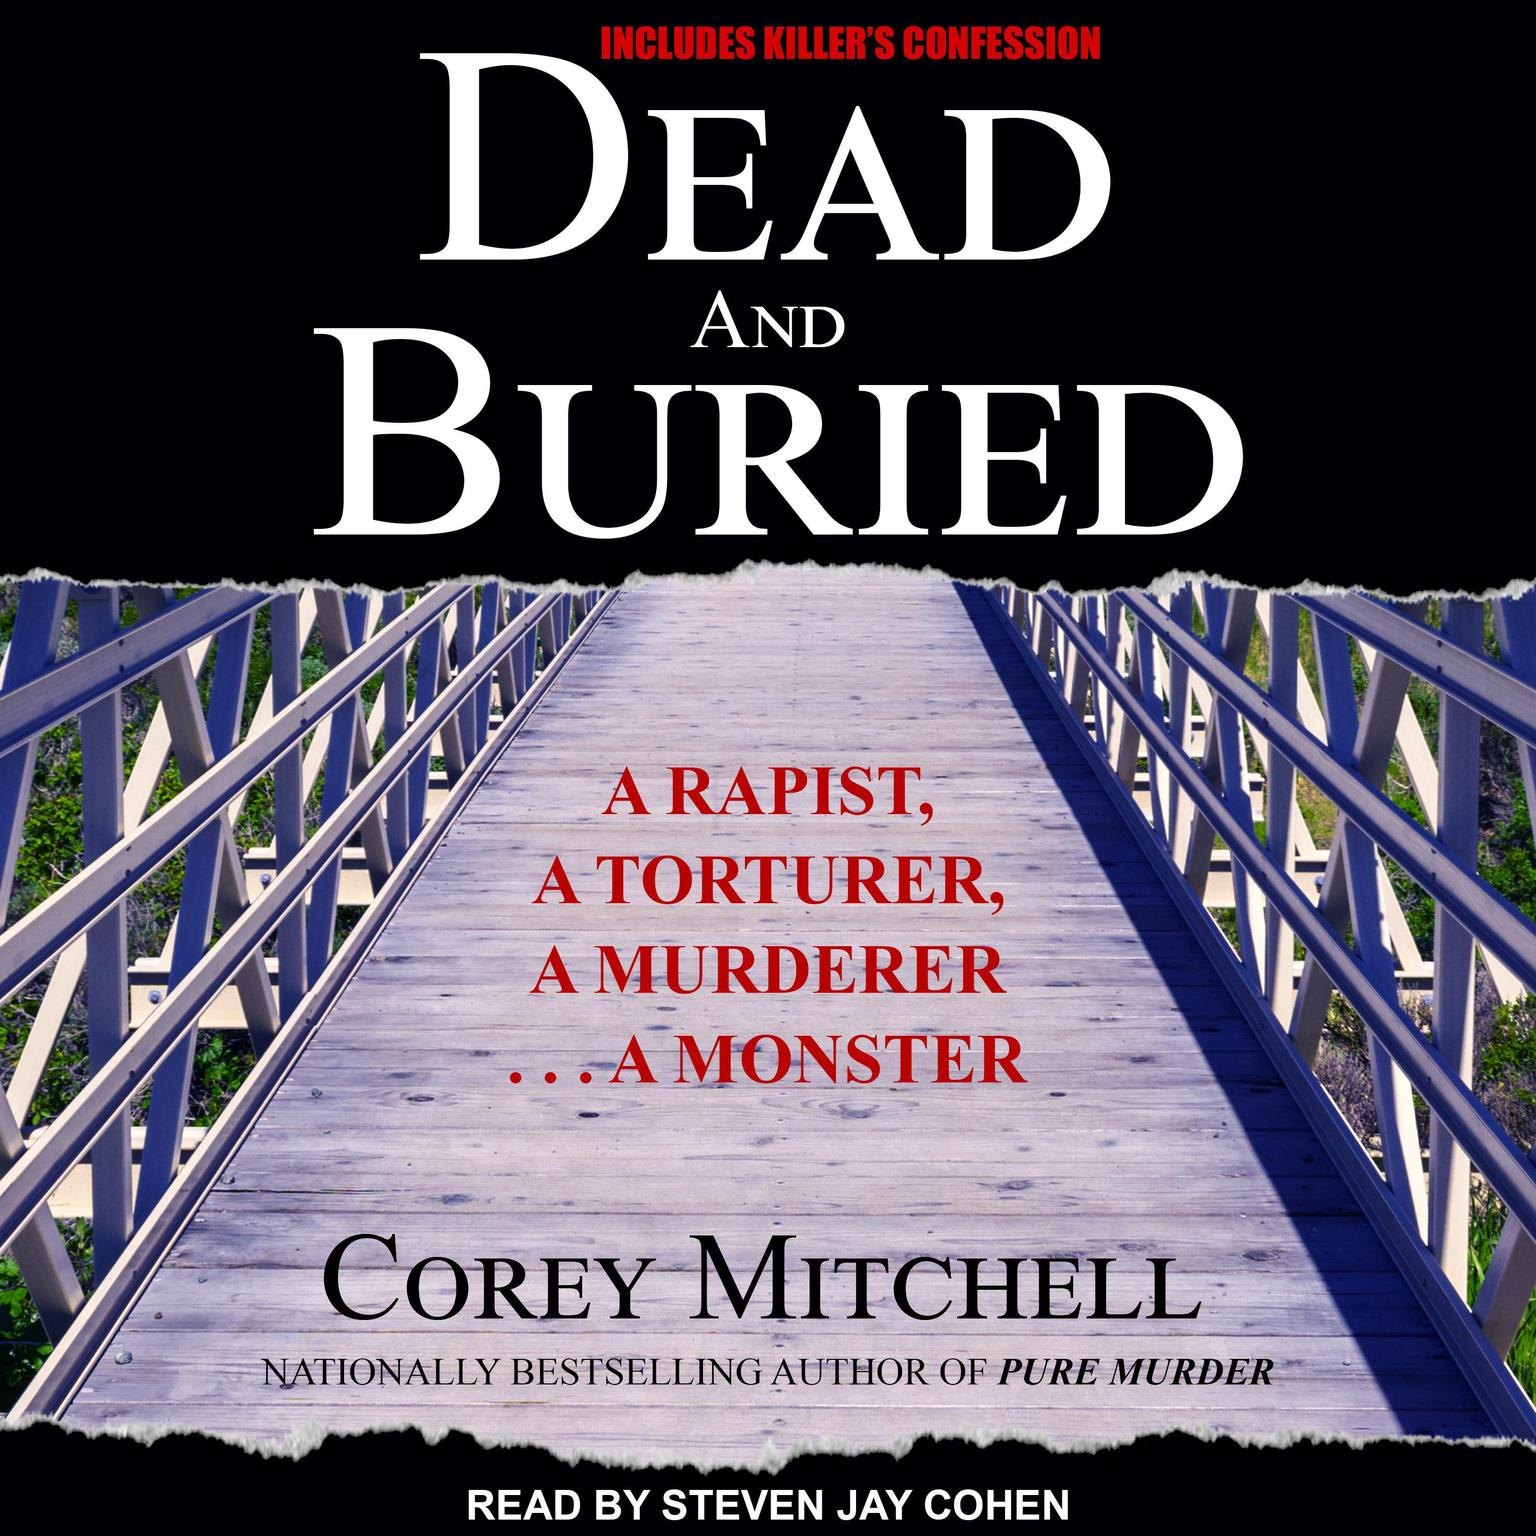 Printable Dead and Buried: A Shocking Account of Rape, Torture, and Murder on the California Coast Audiobook Cover Art